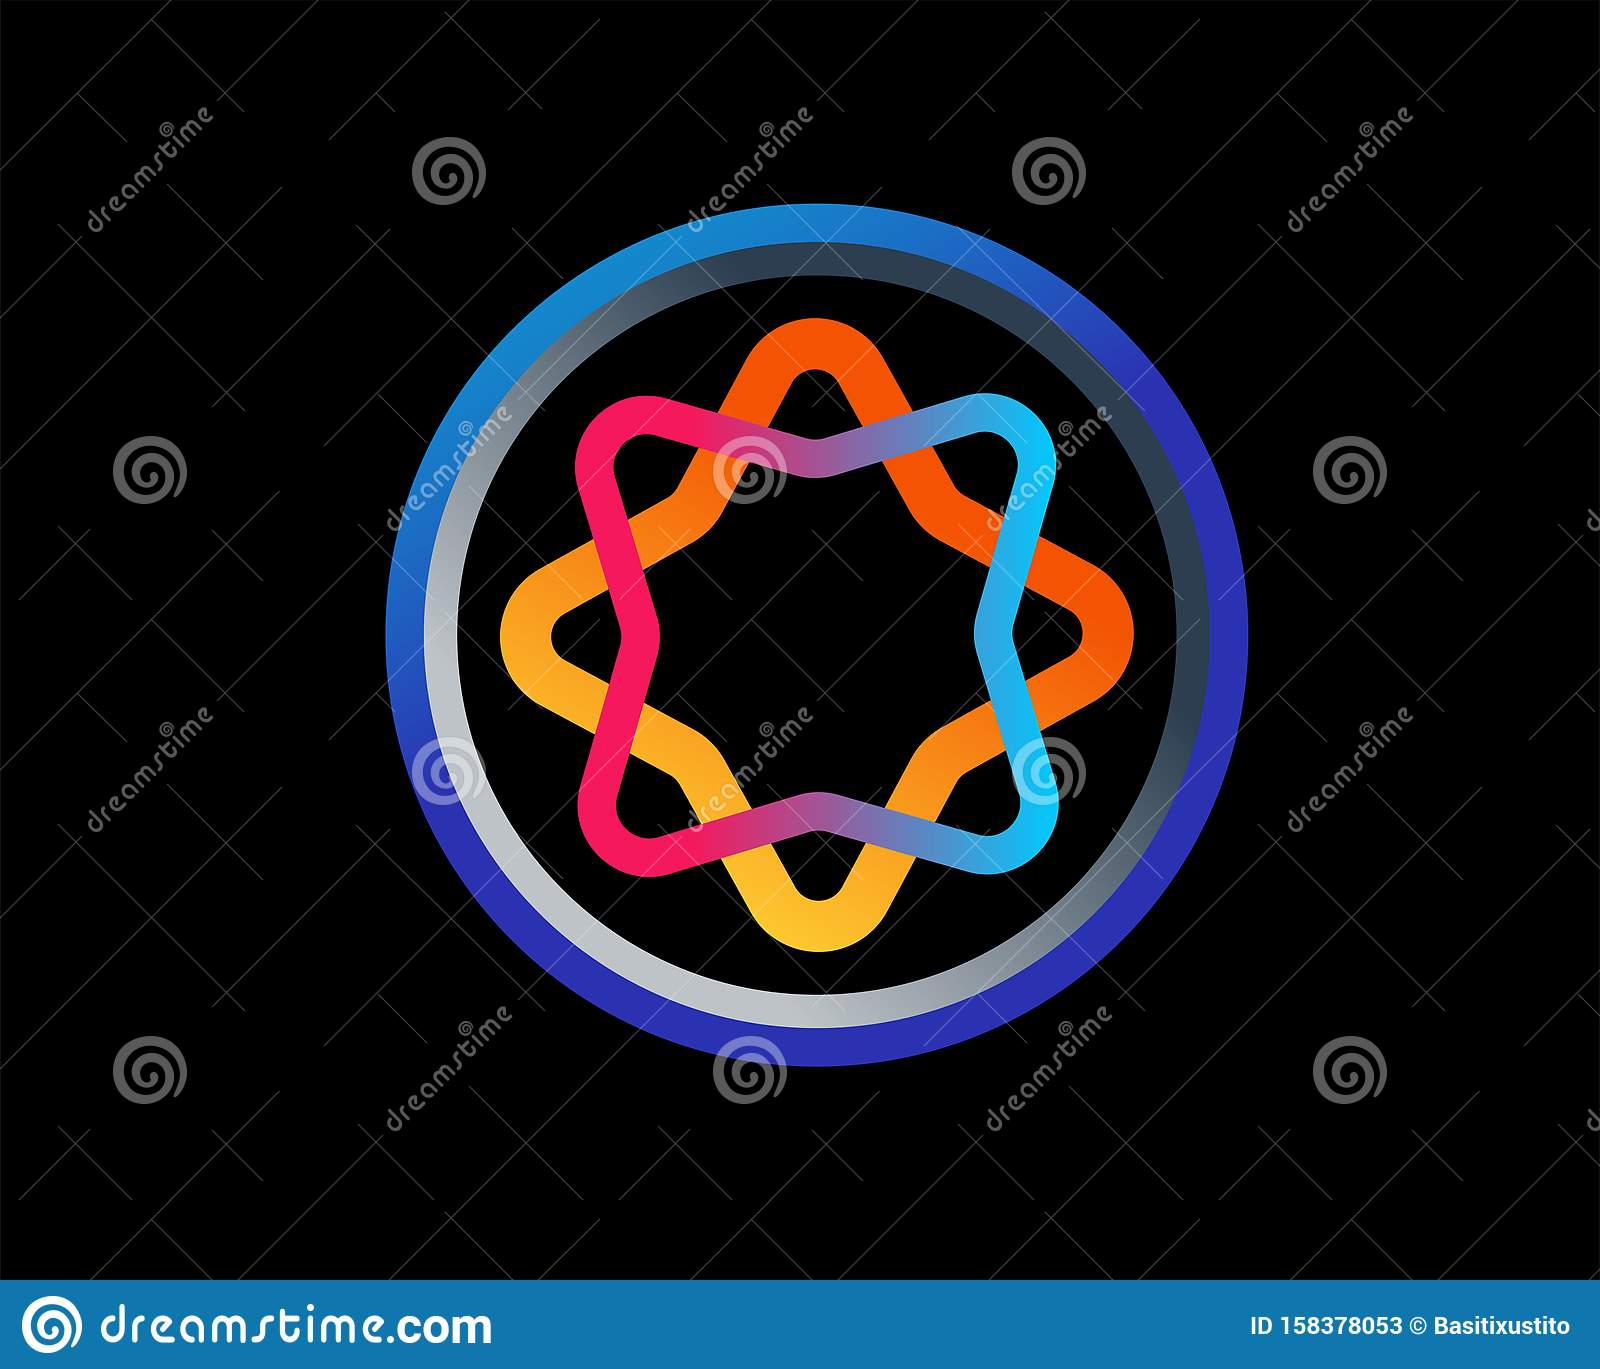 Circle Is A Symbol Of Unity Togetherness And Integrity Stock Image Image Of Neon Shape 158378053